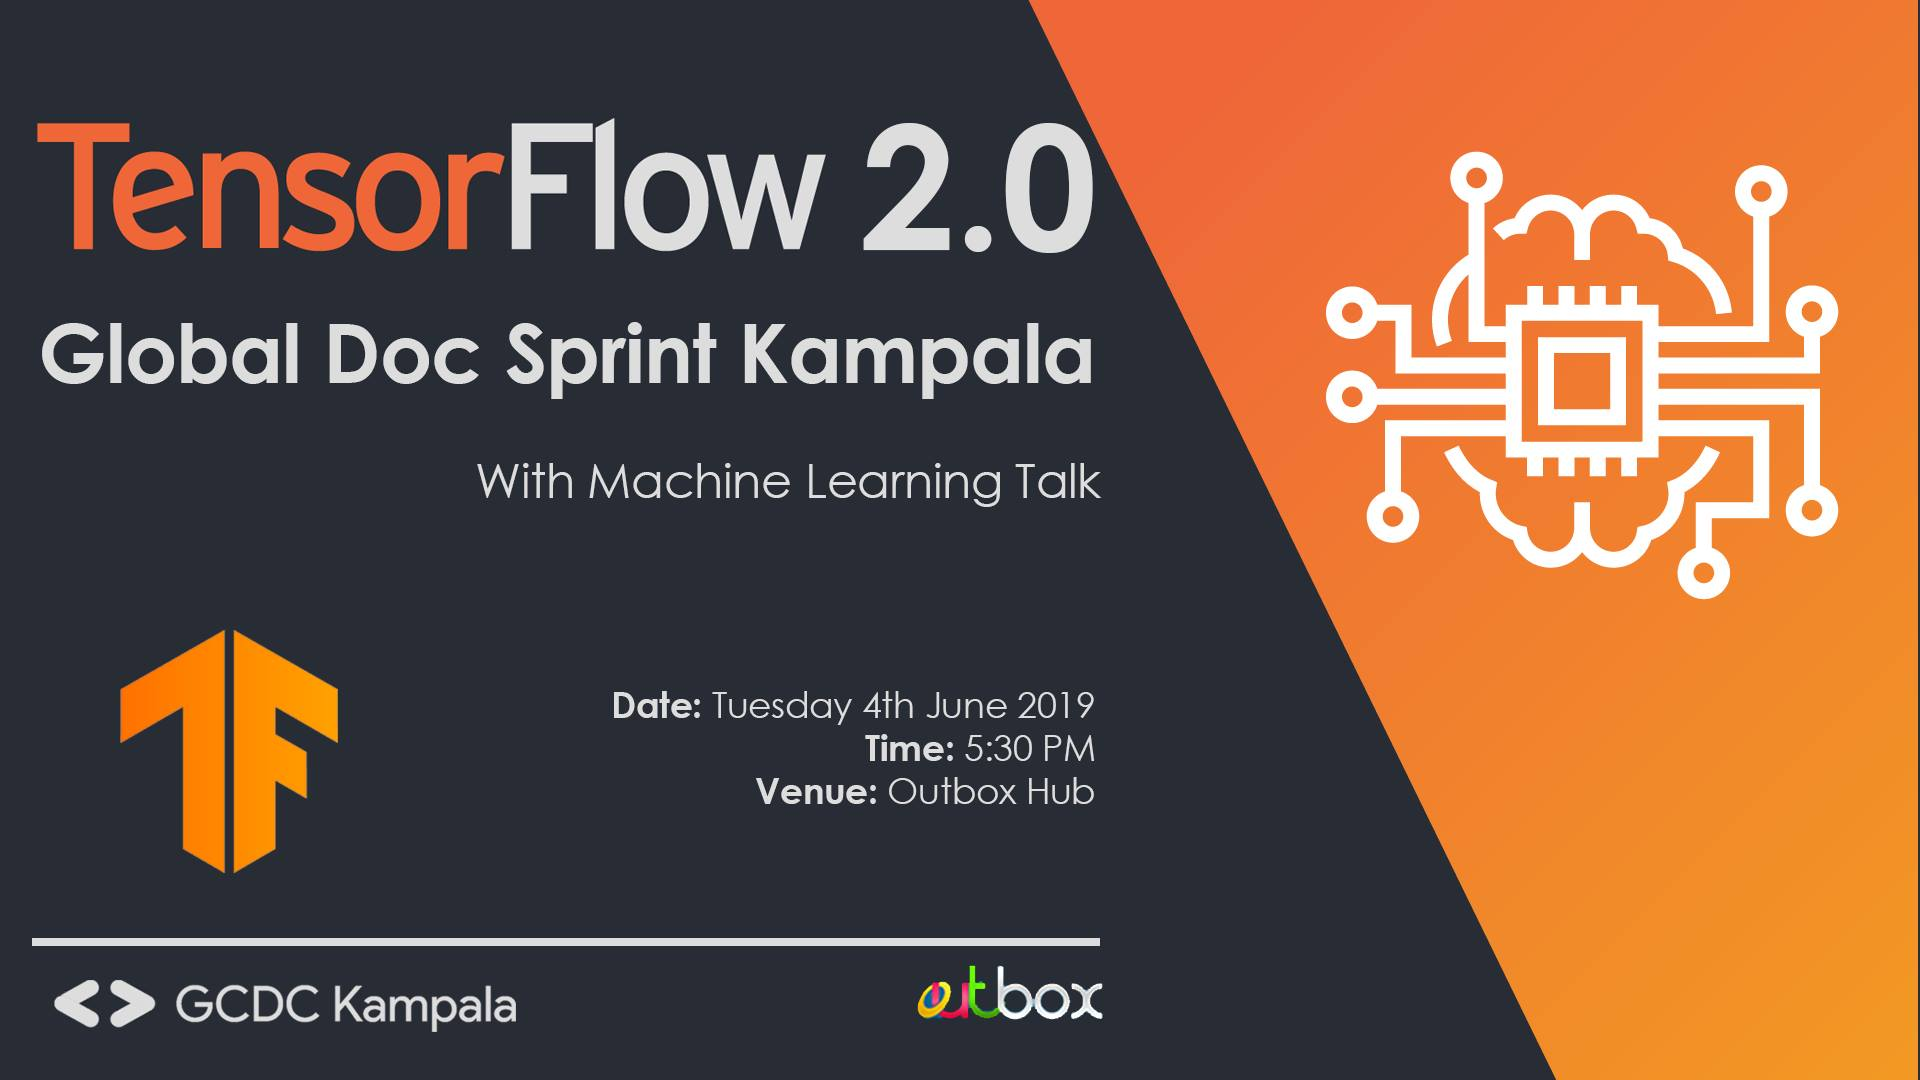 TensorFlow 2.0 Global Doc Sprint Kampala, Outbox Hub